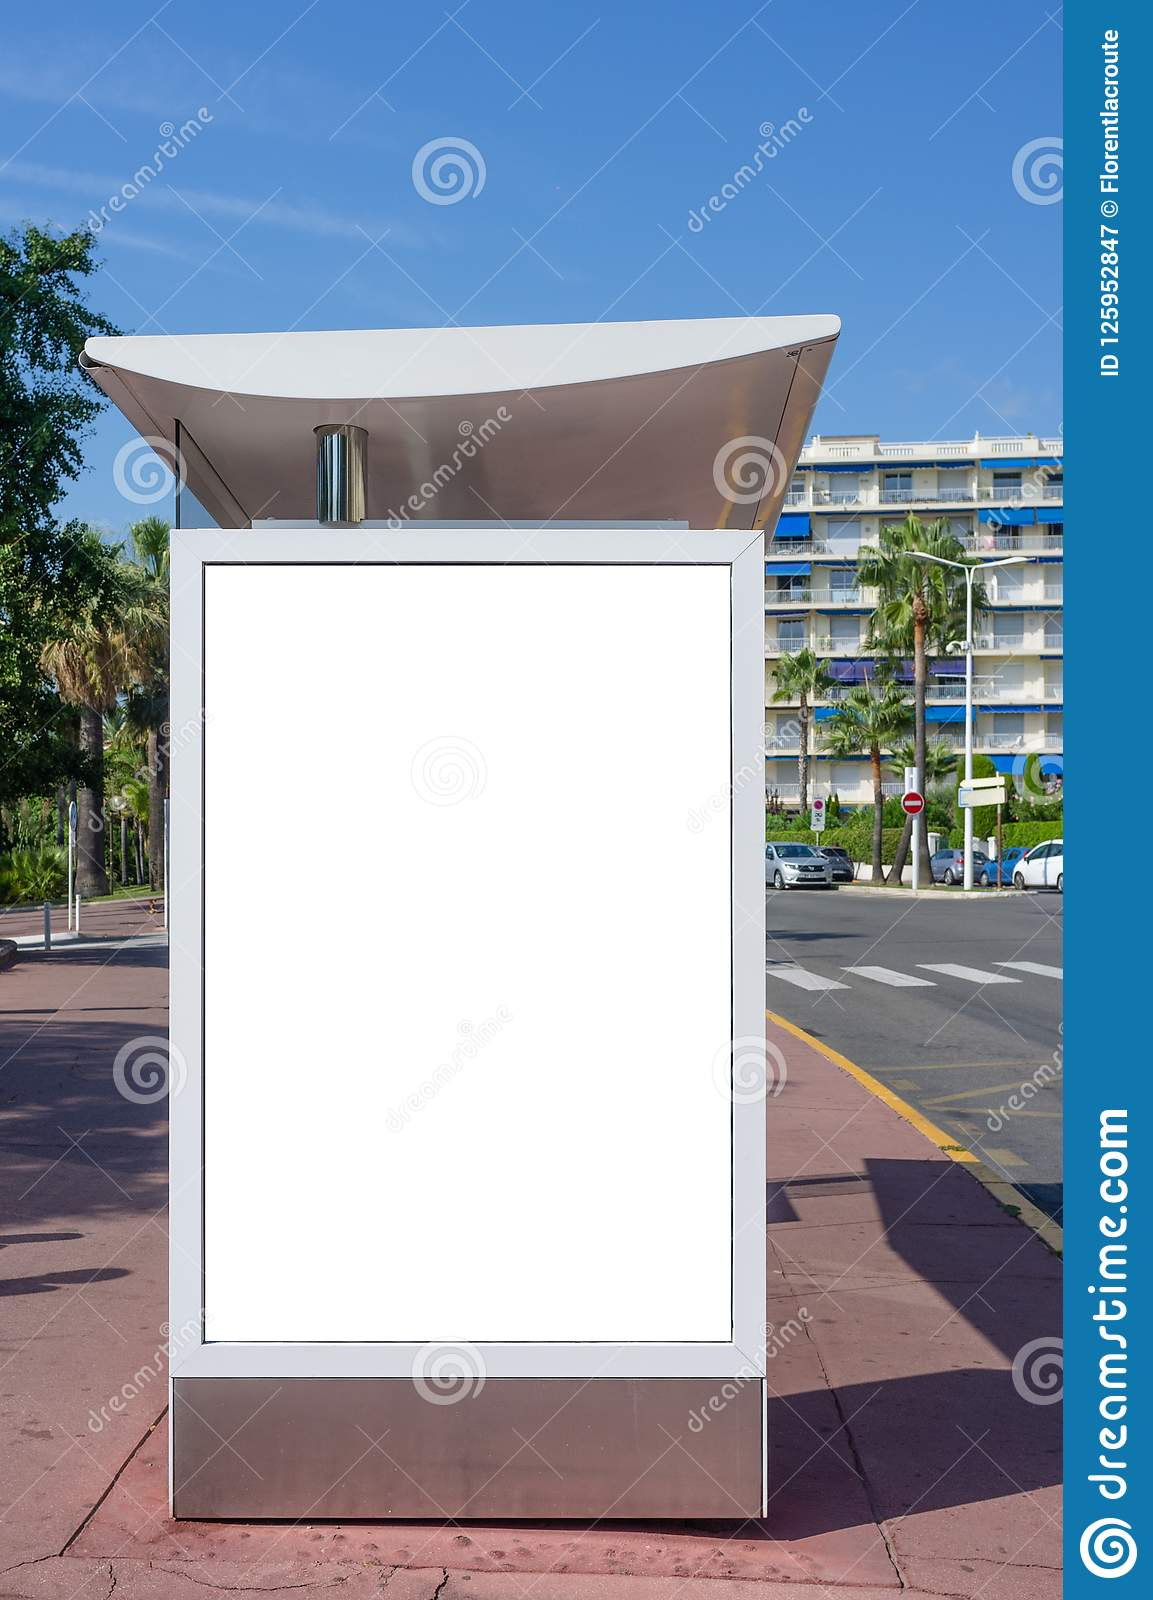 Vertical blank white billboard at bus stop on city street. In the background buildings and road. Mock up. Poster on street